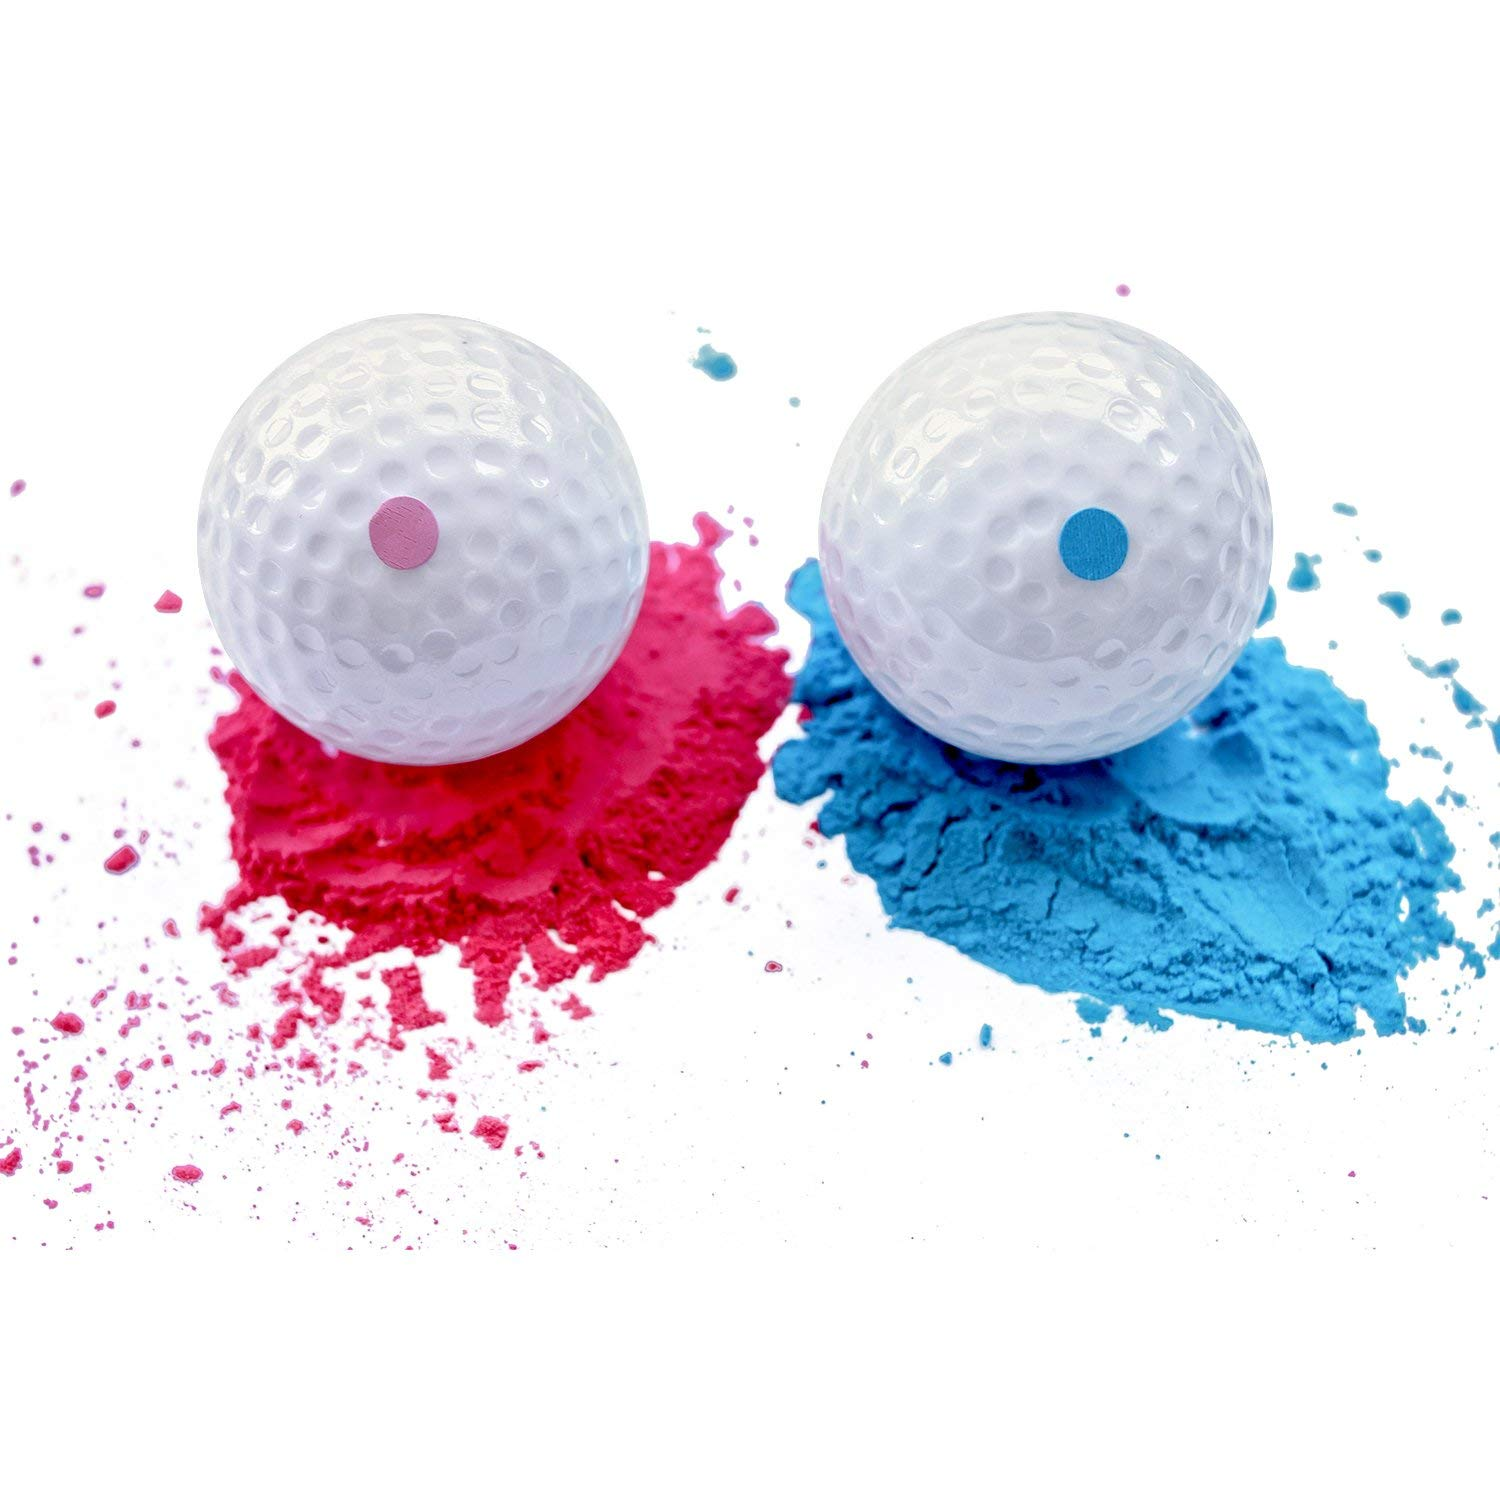 Gender Reveal Golf Balls | Set of 2 | 1 PINK | 1 BLUE | Gender Reveal Party Supplies, Baby Shower | BIG Powder Poof, VIBRANT Color